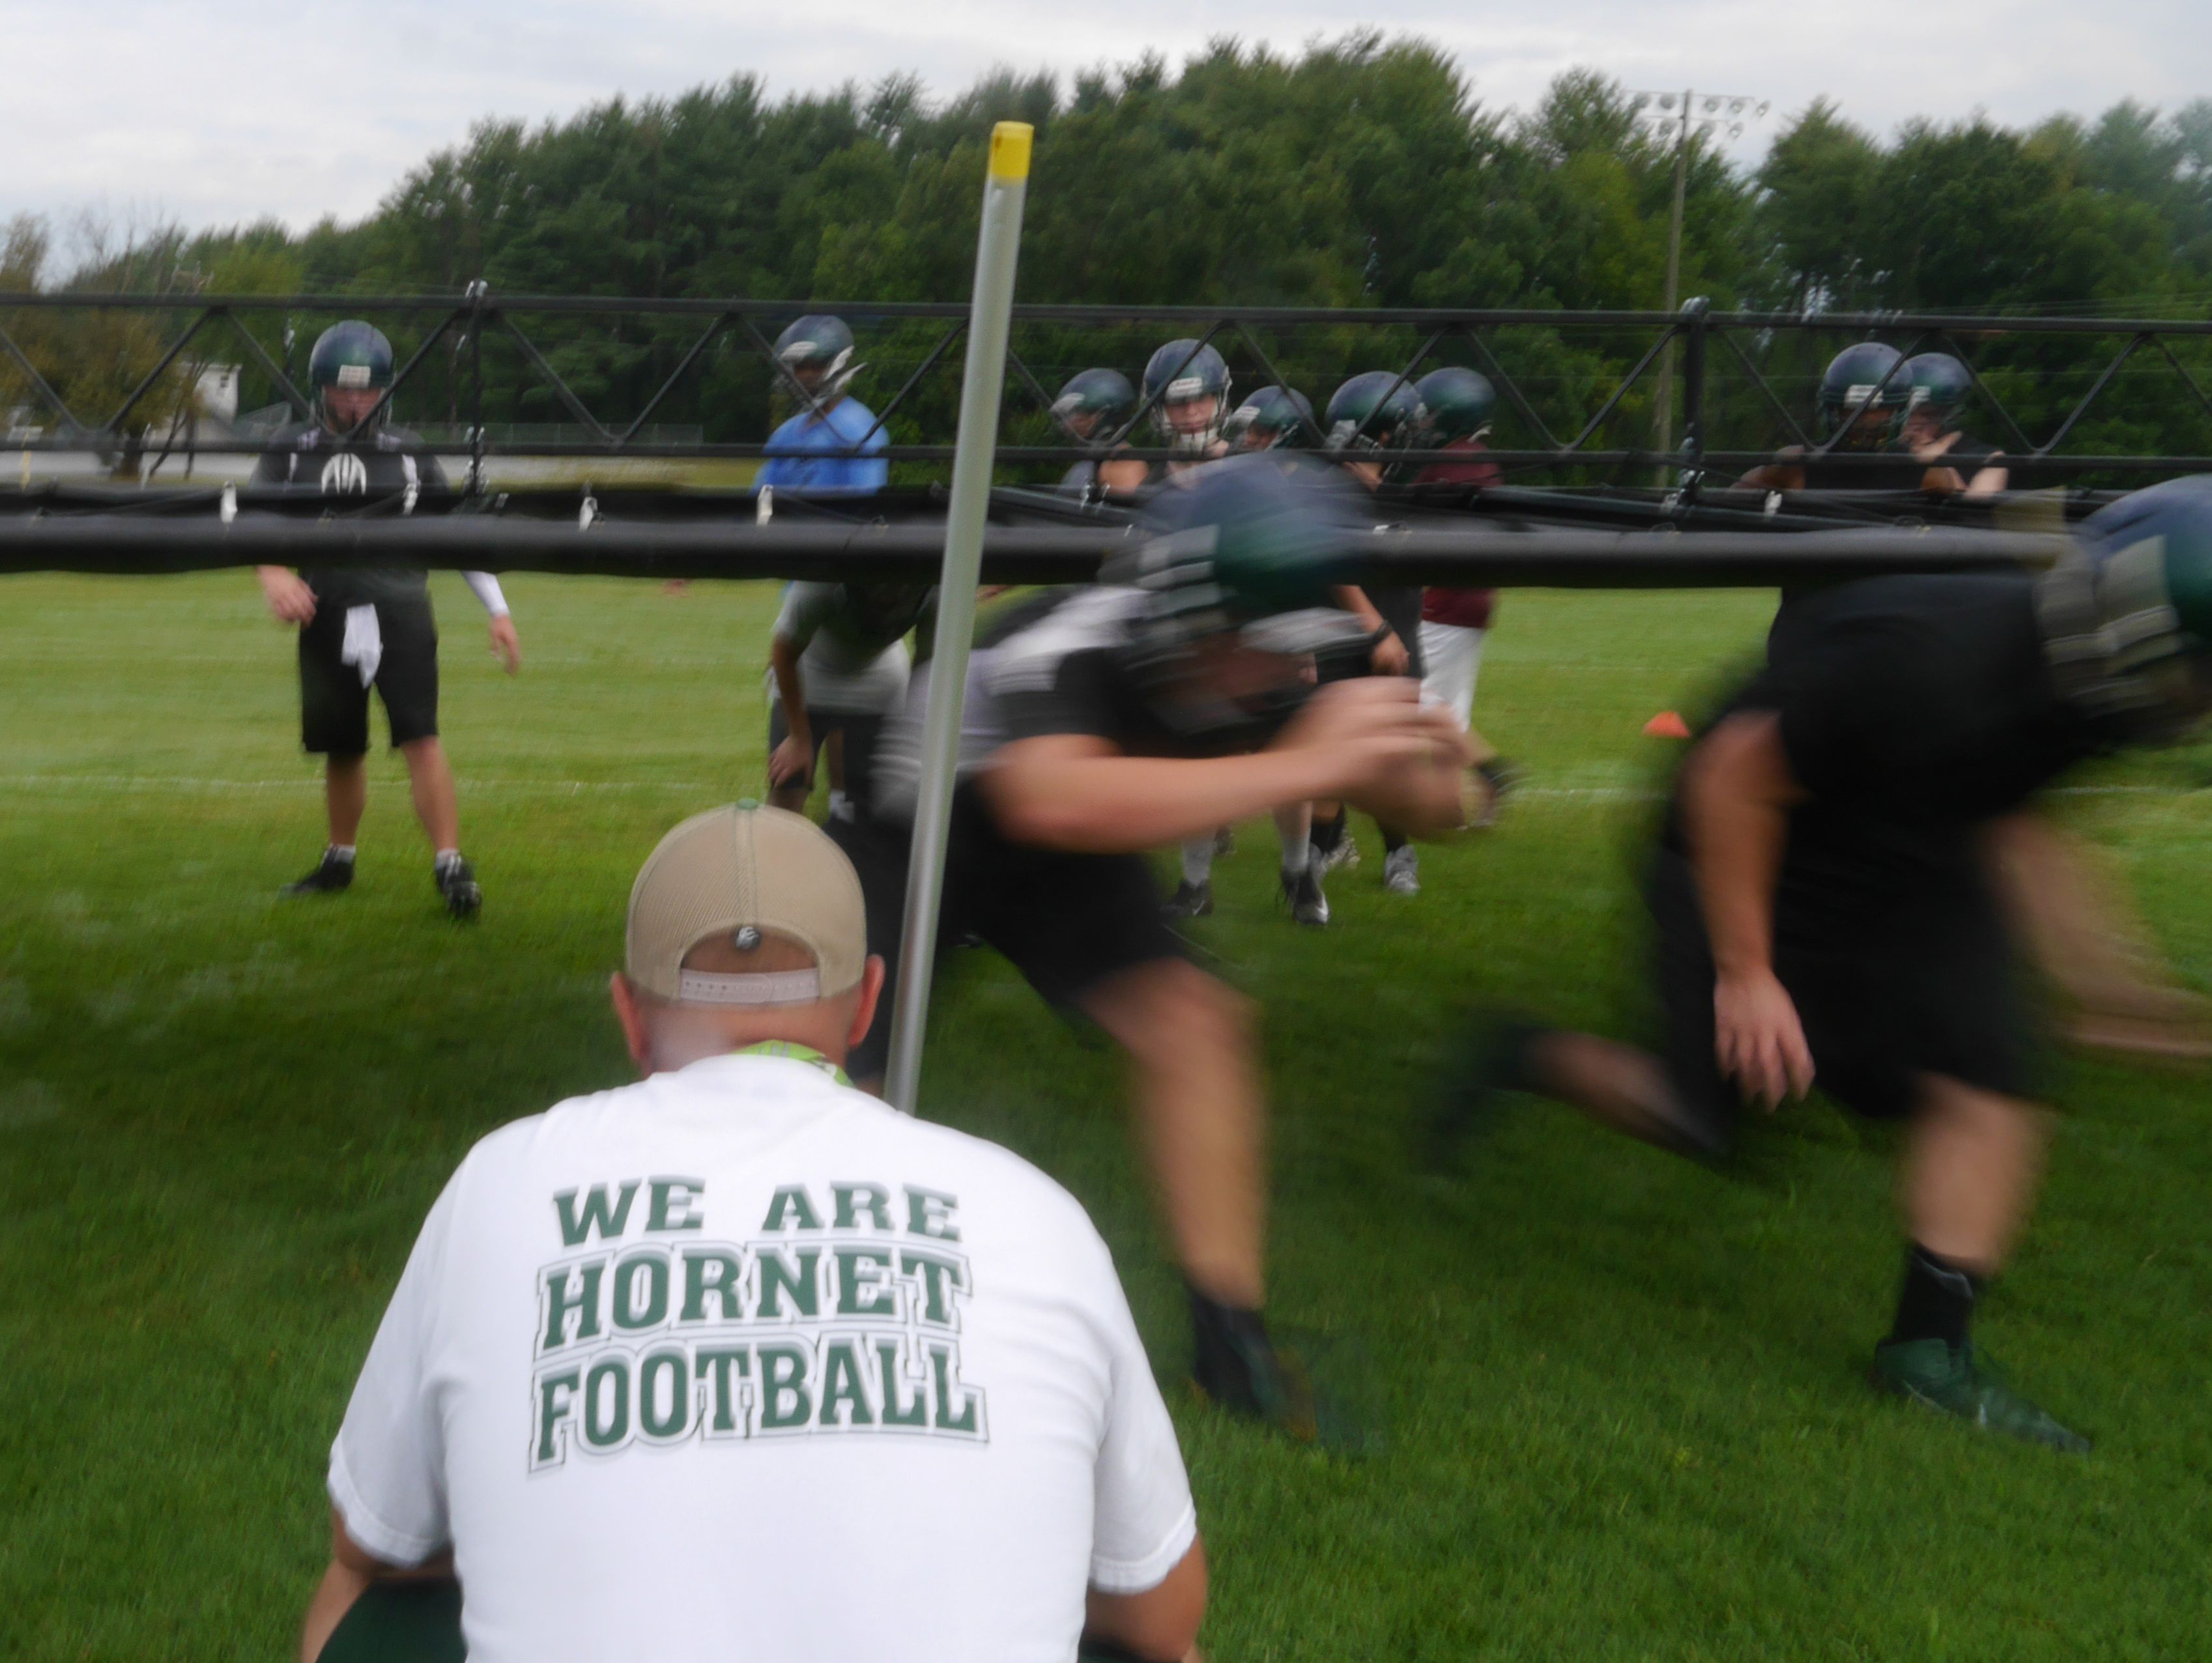 Wilson Memorial High School football coach Jeremiah Major runs lineman drills during the first day of practice on Thursday, July 28, 2016.